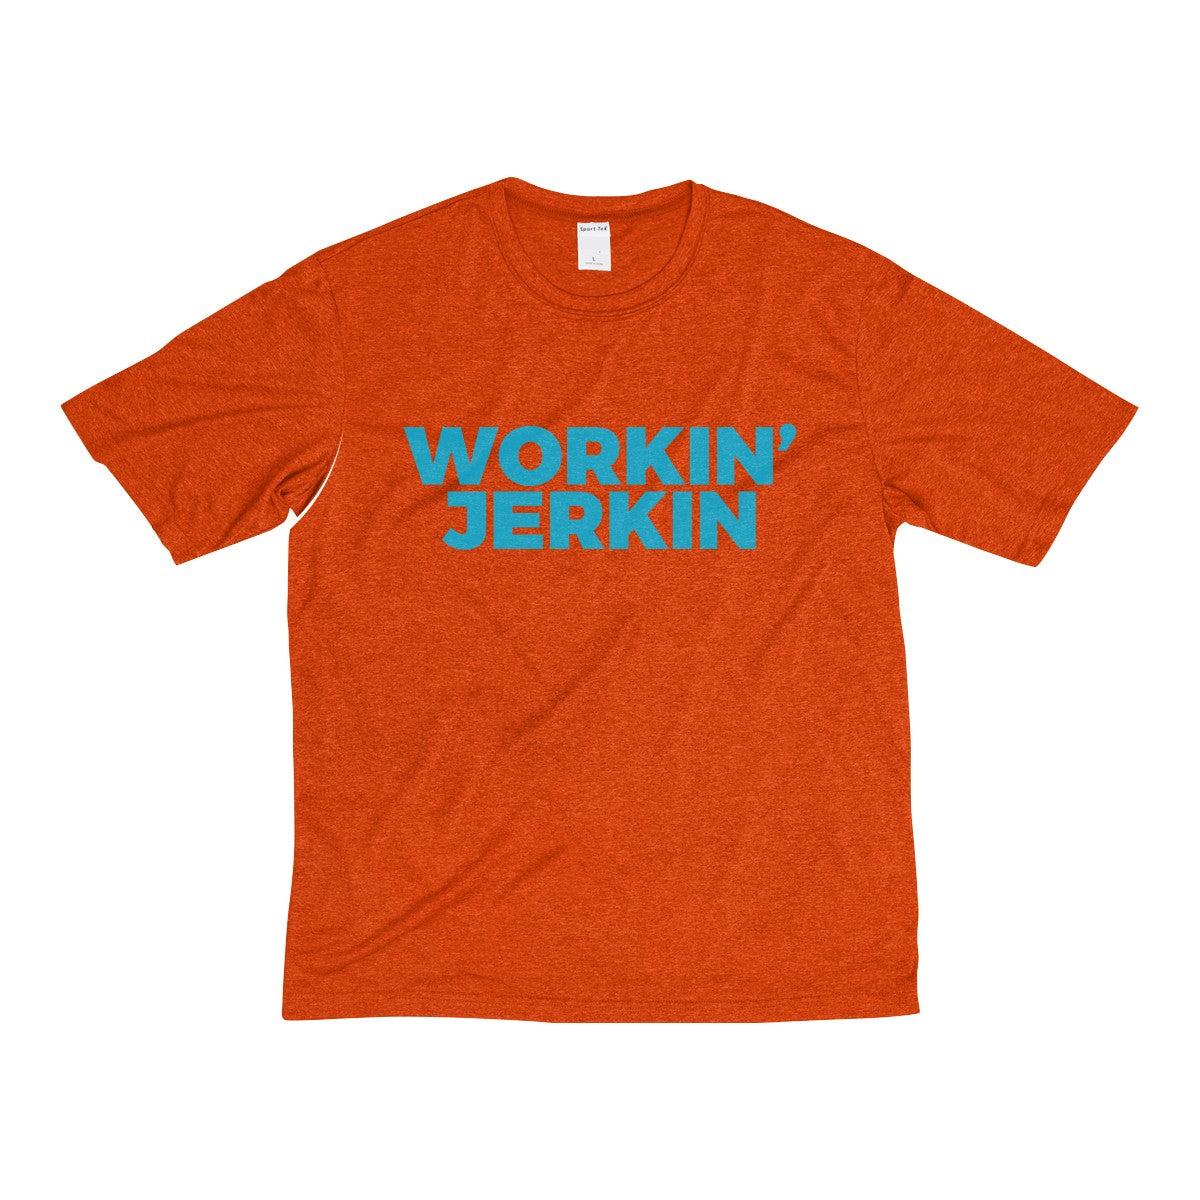 Workin' Jerkin Men's Heather Dri-Fit Workout Tee